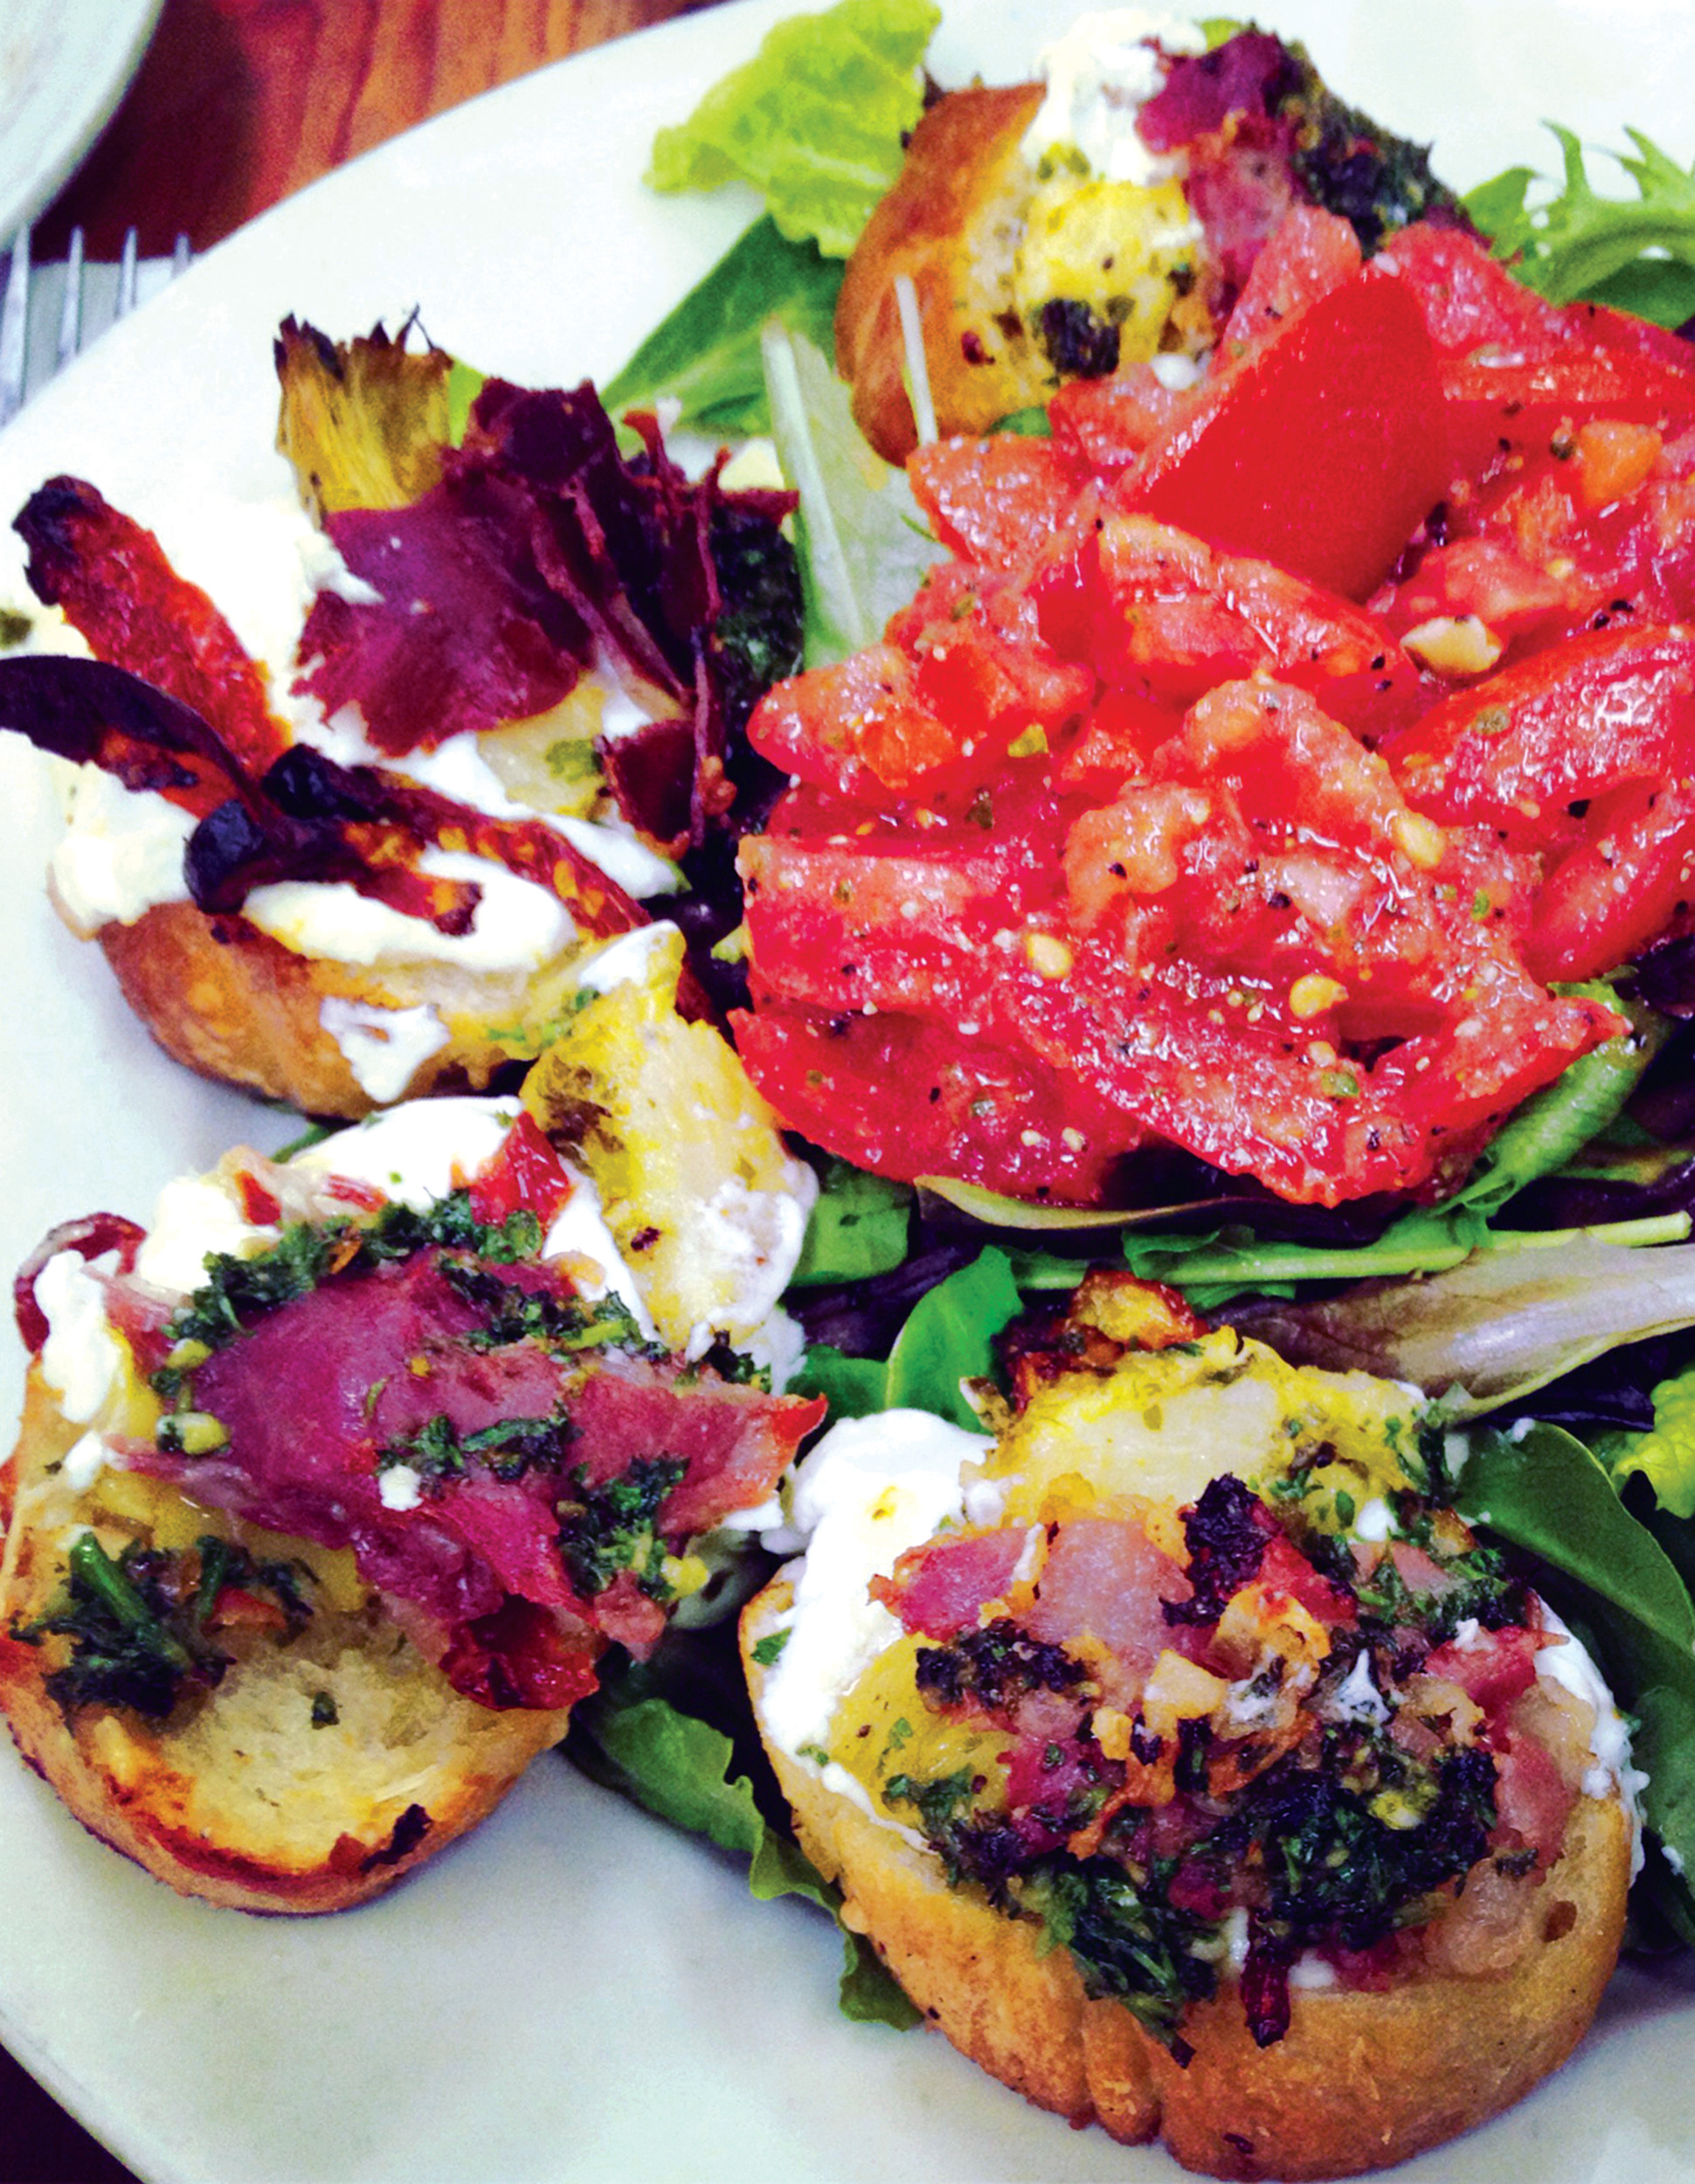 Best lunch: Bruschetta from French Pantry